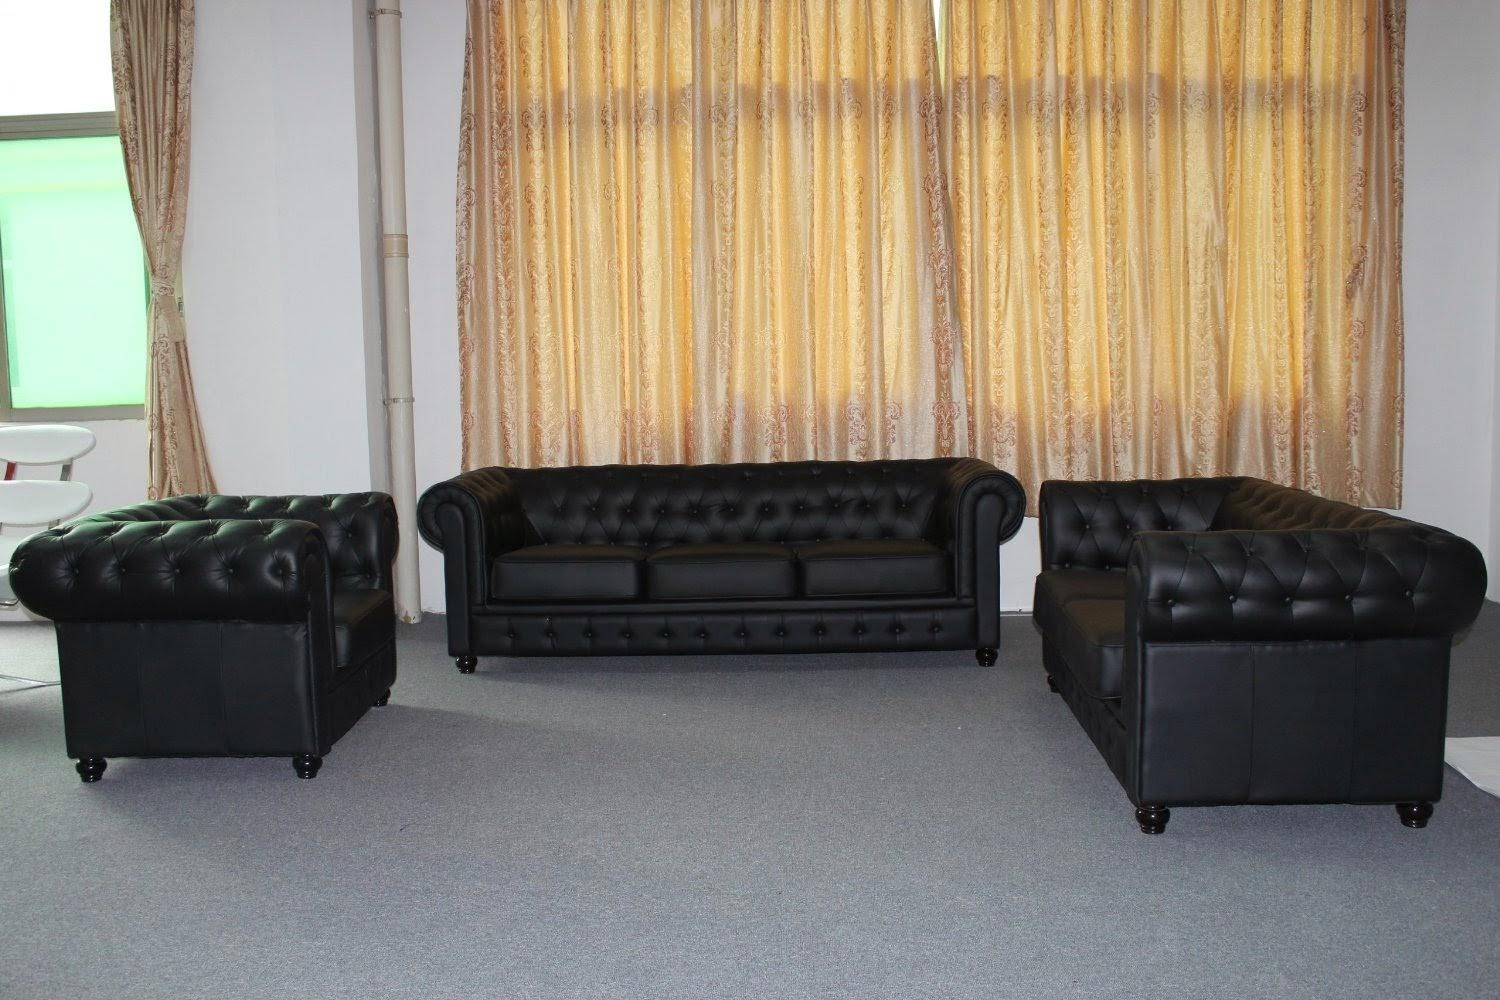 Chesterfield Sofa: Modern Chesterfield Sofa Pertaining To Chesterfield Black Sofas (View 3 of 20)